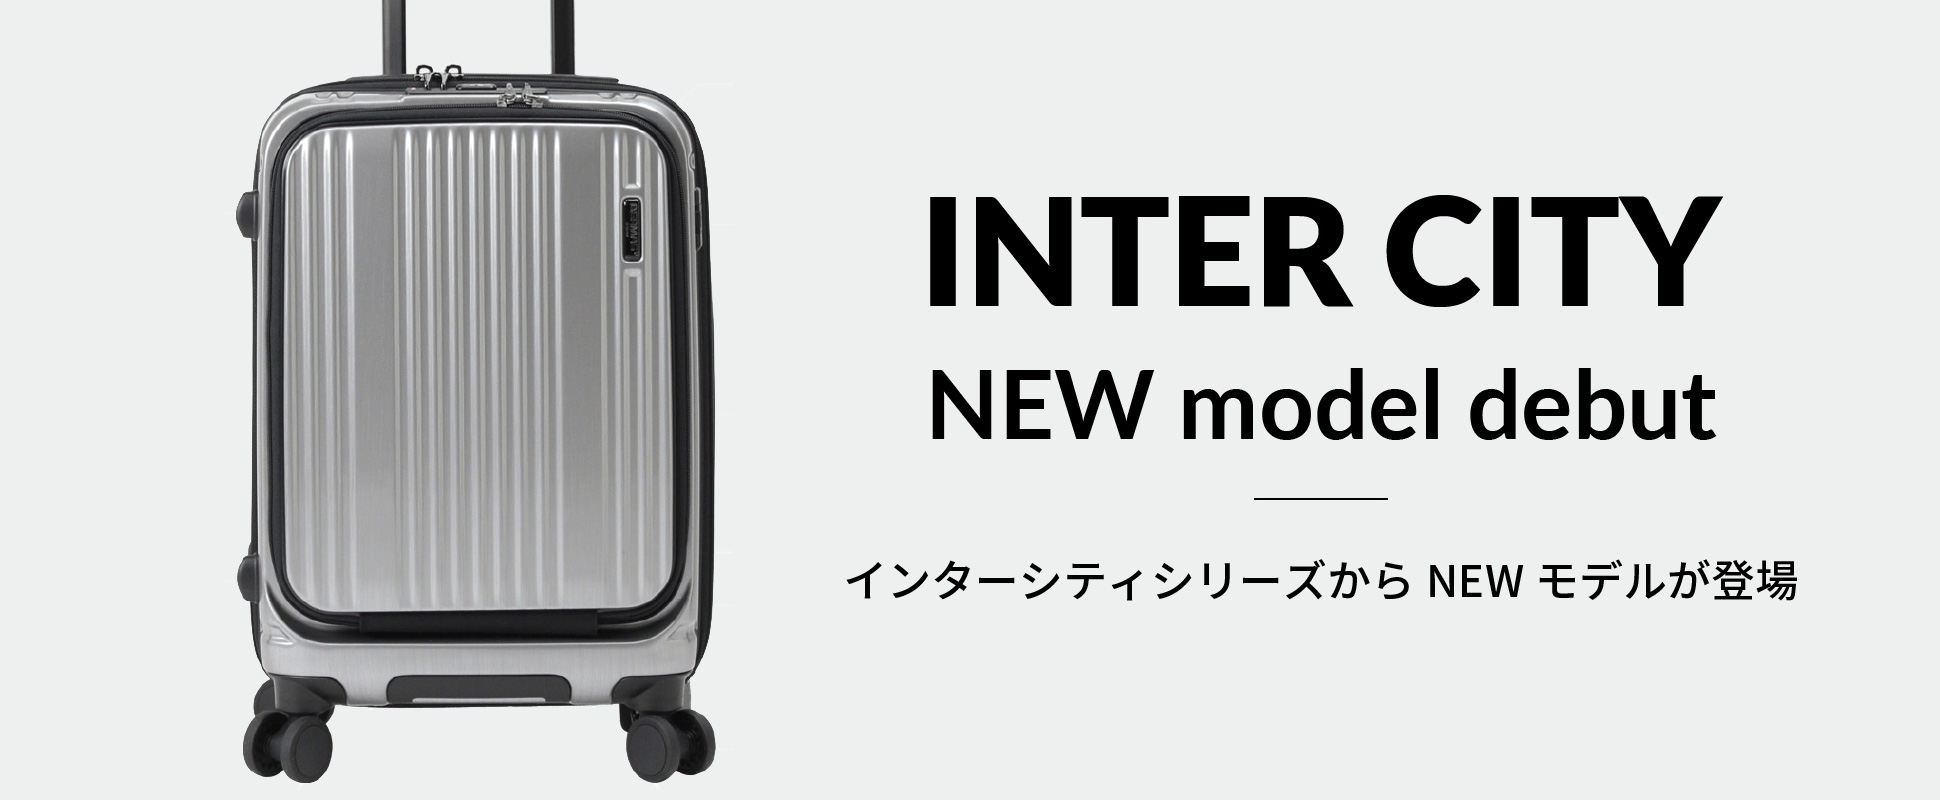 INTER CITY NEW model